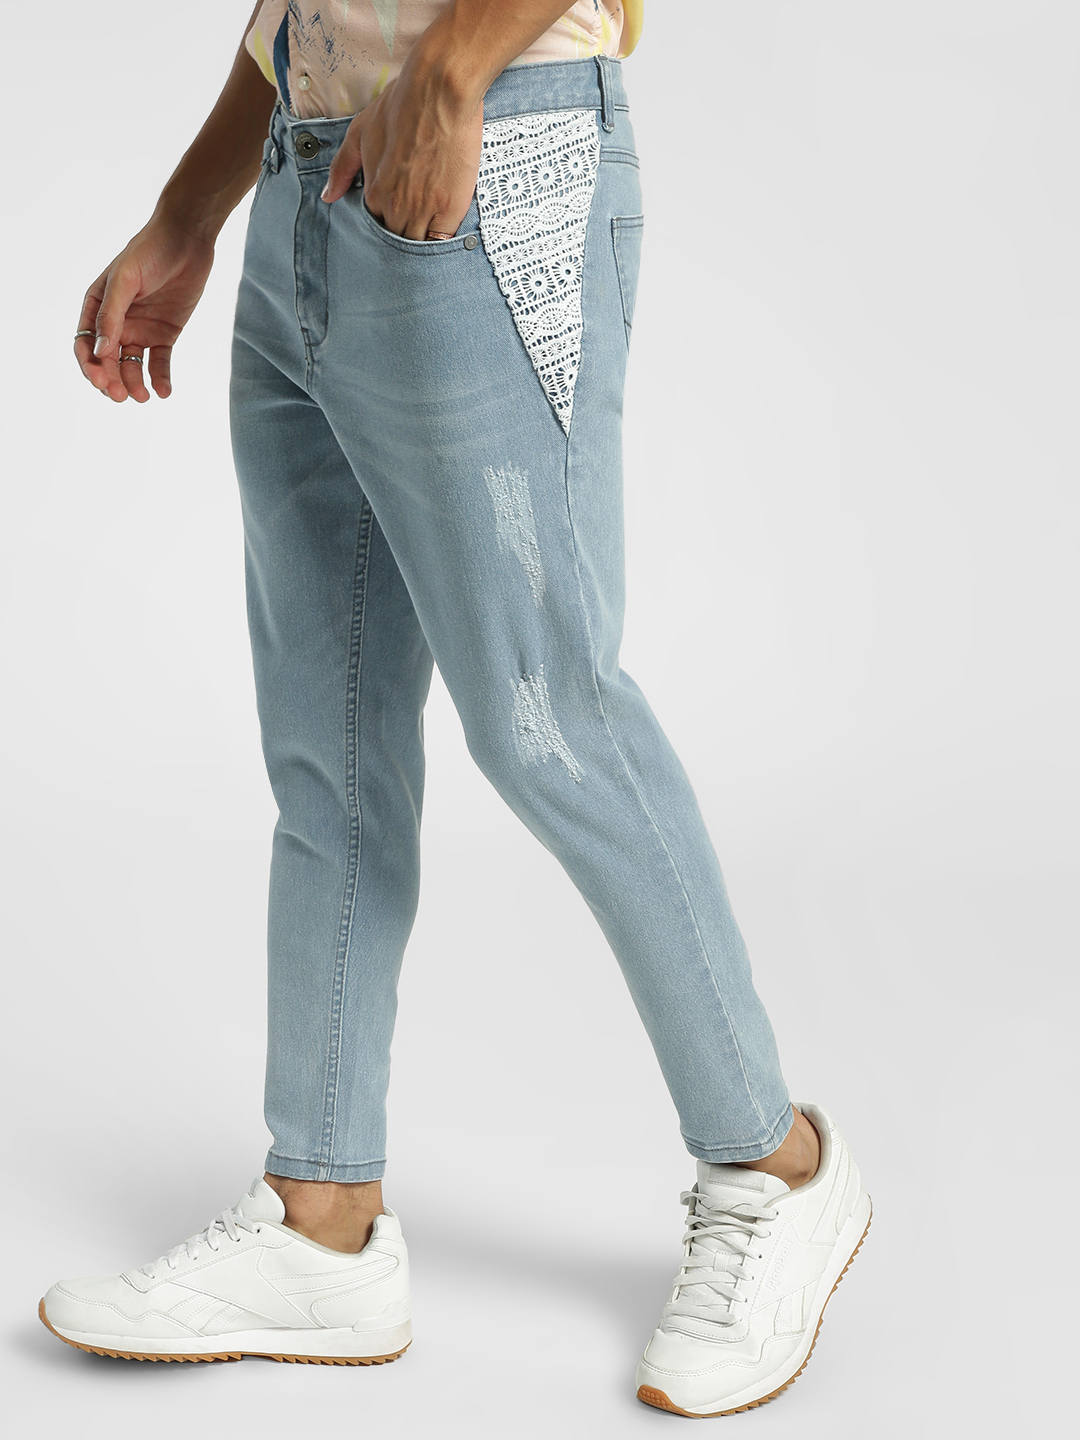 K Denim Blue KOOVS Crochet Panel Girlfriend Jeans 1